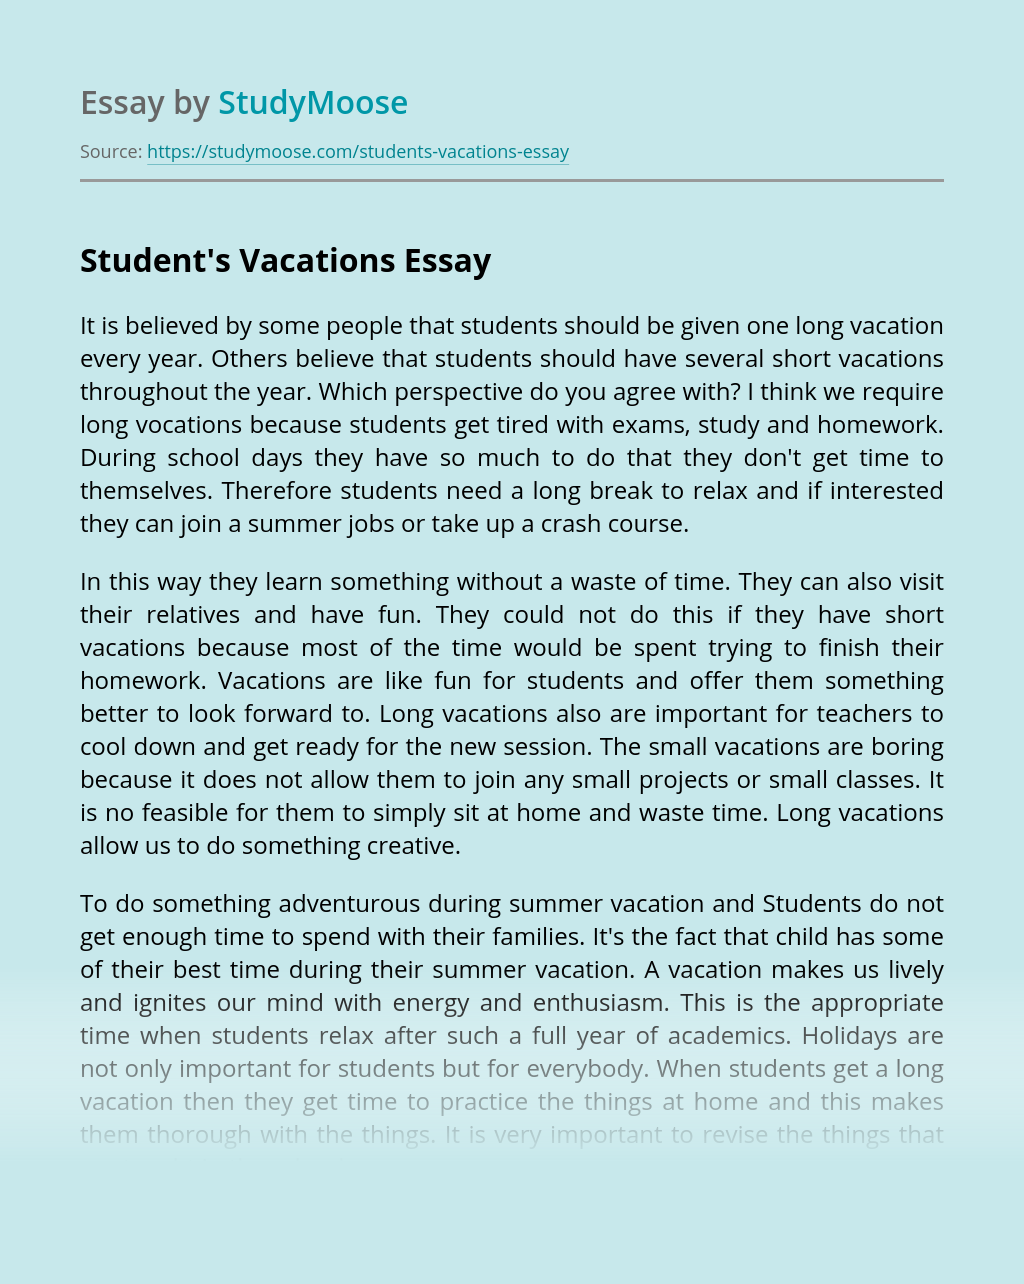 Student's Vacations